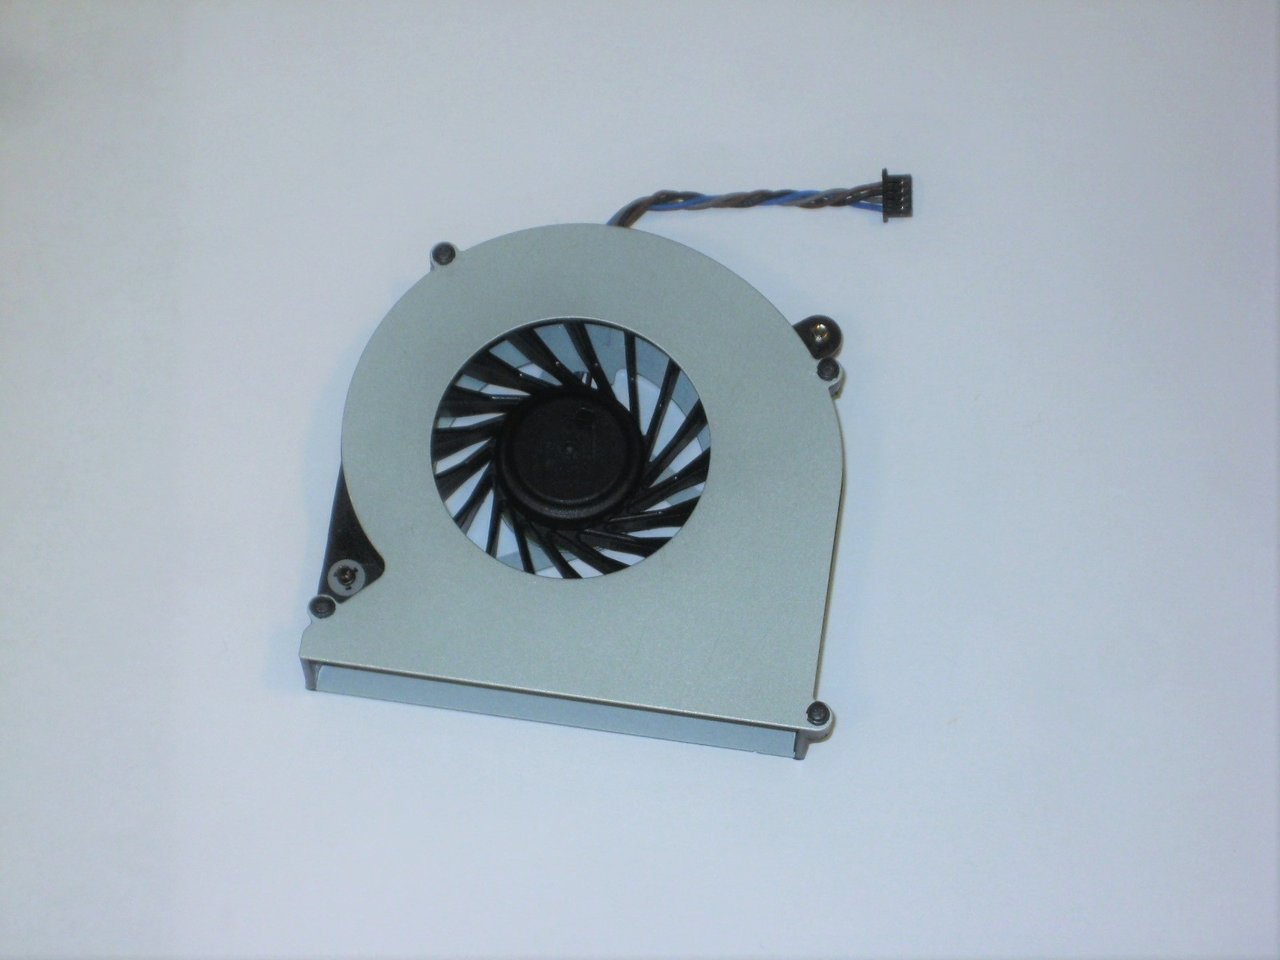 Forcecon DFS531205MC0T FAD9 Ventilateur FAN pour HP